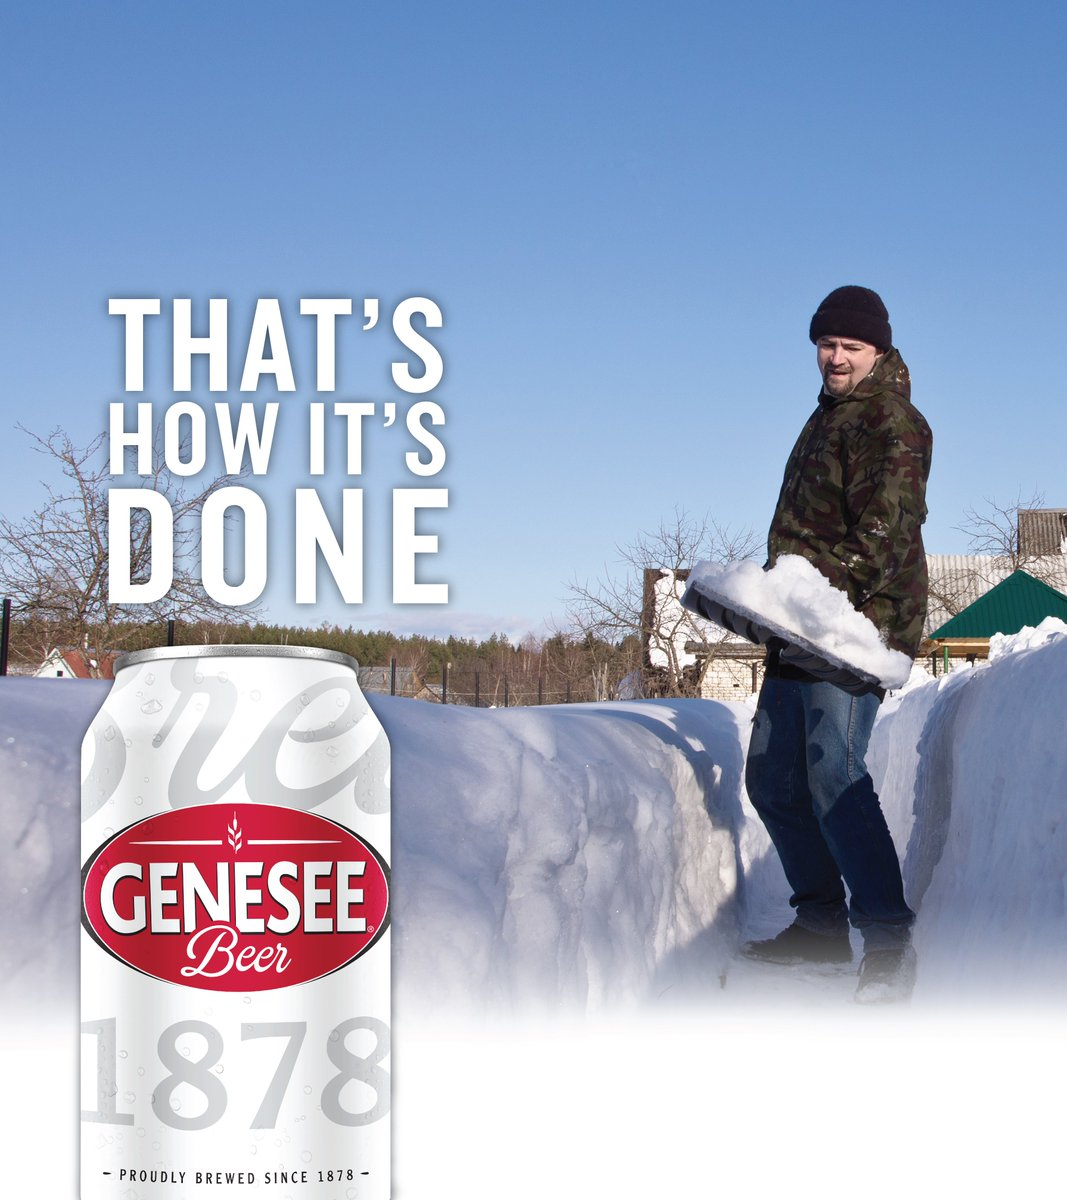 Photo from #thatshowitsdone on Twitter on GeneseeBrewery at 11/12/19 at 1:48PM